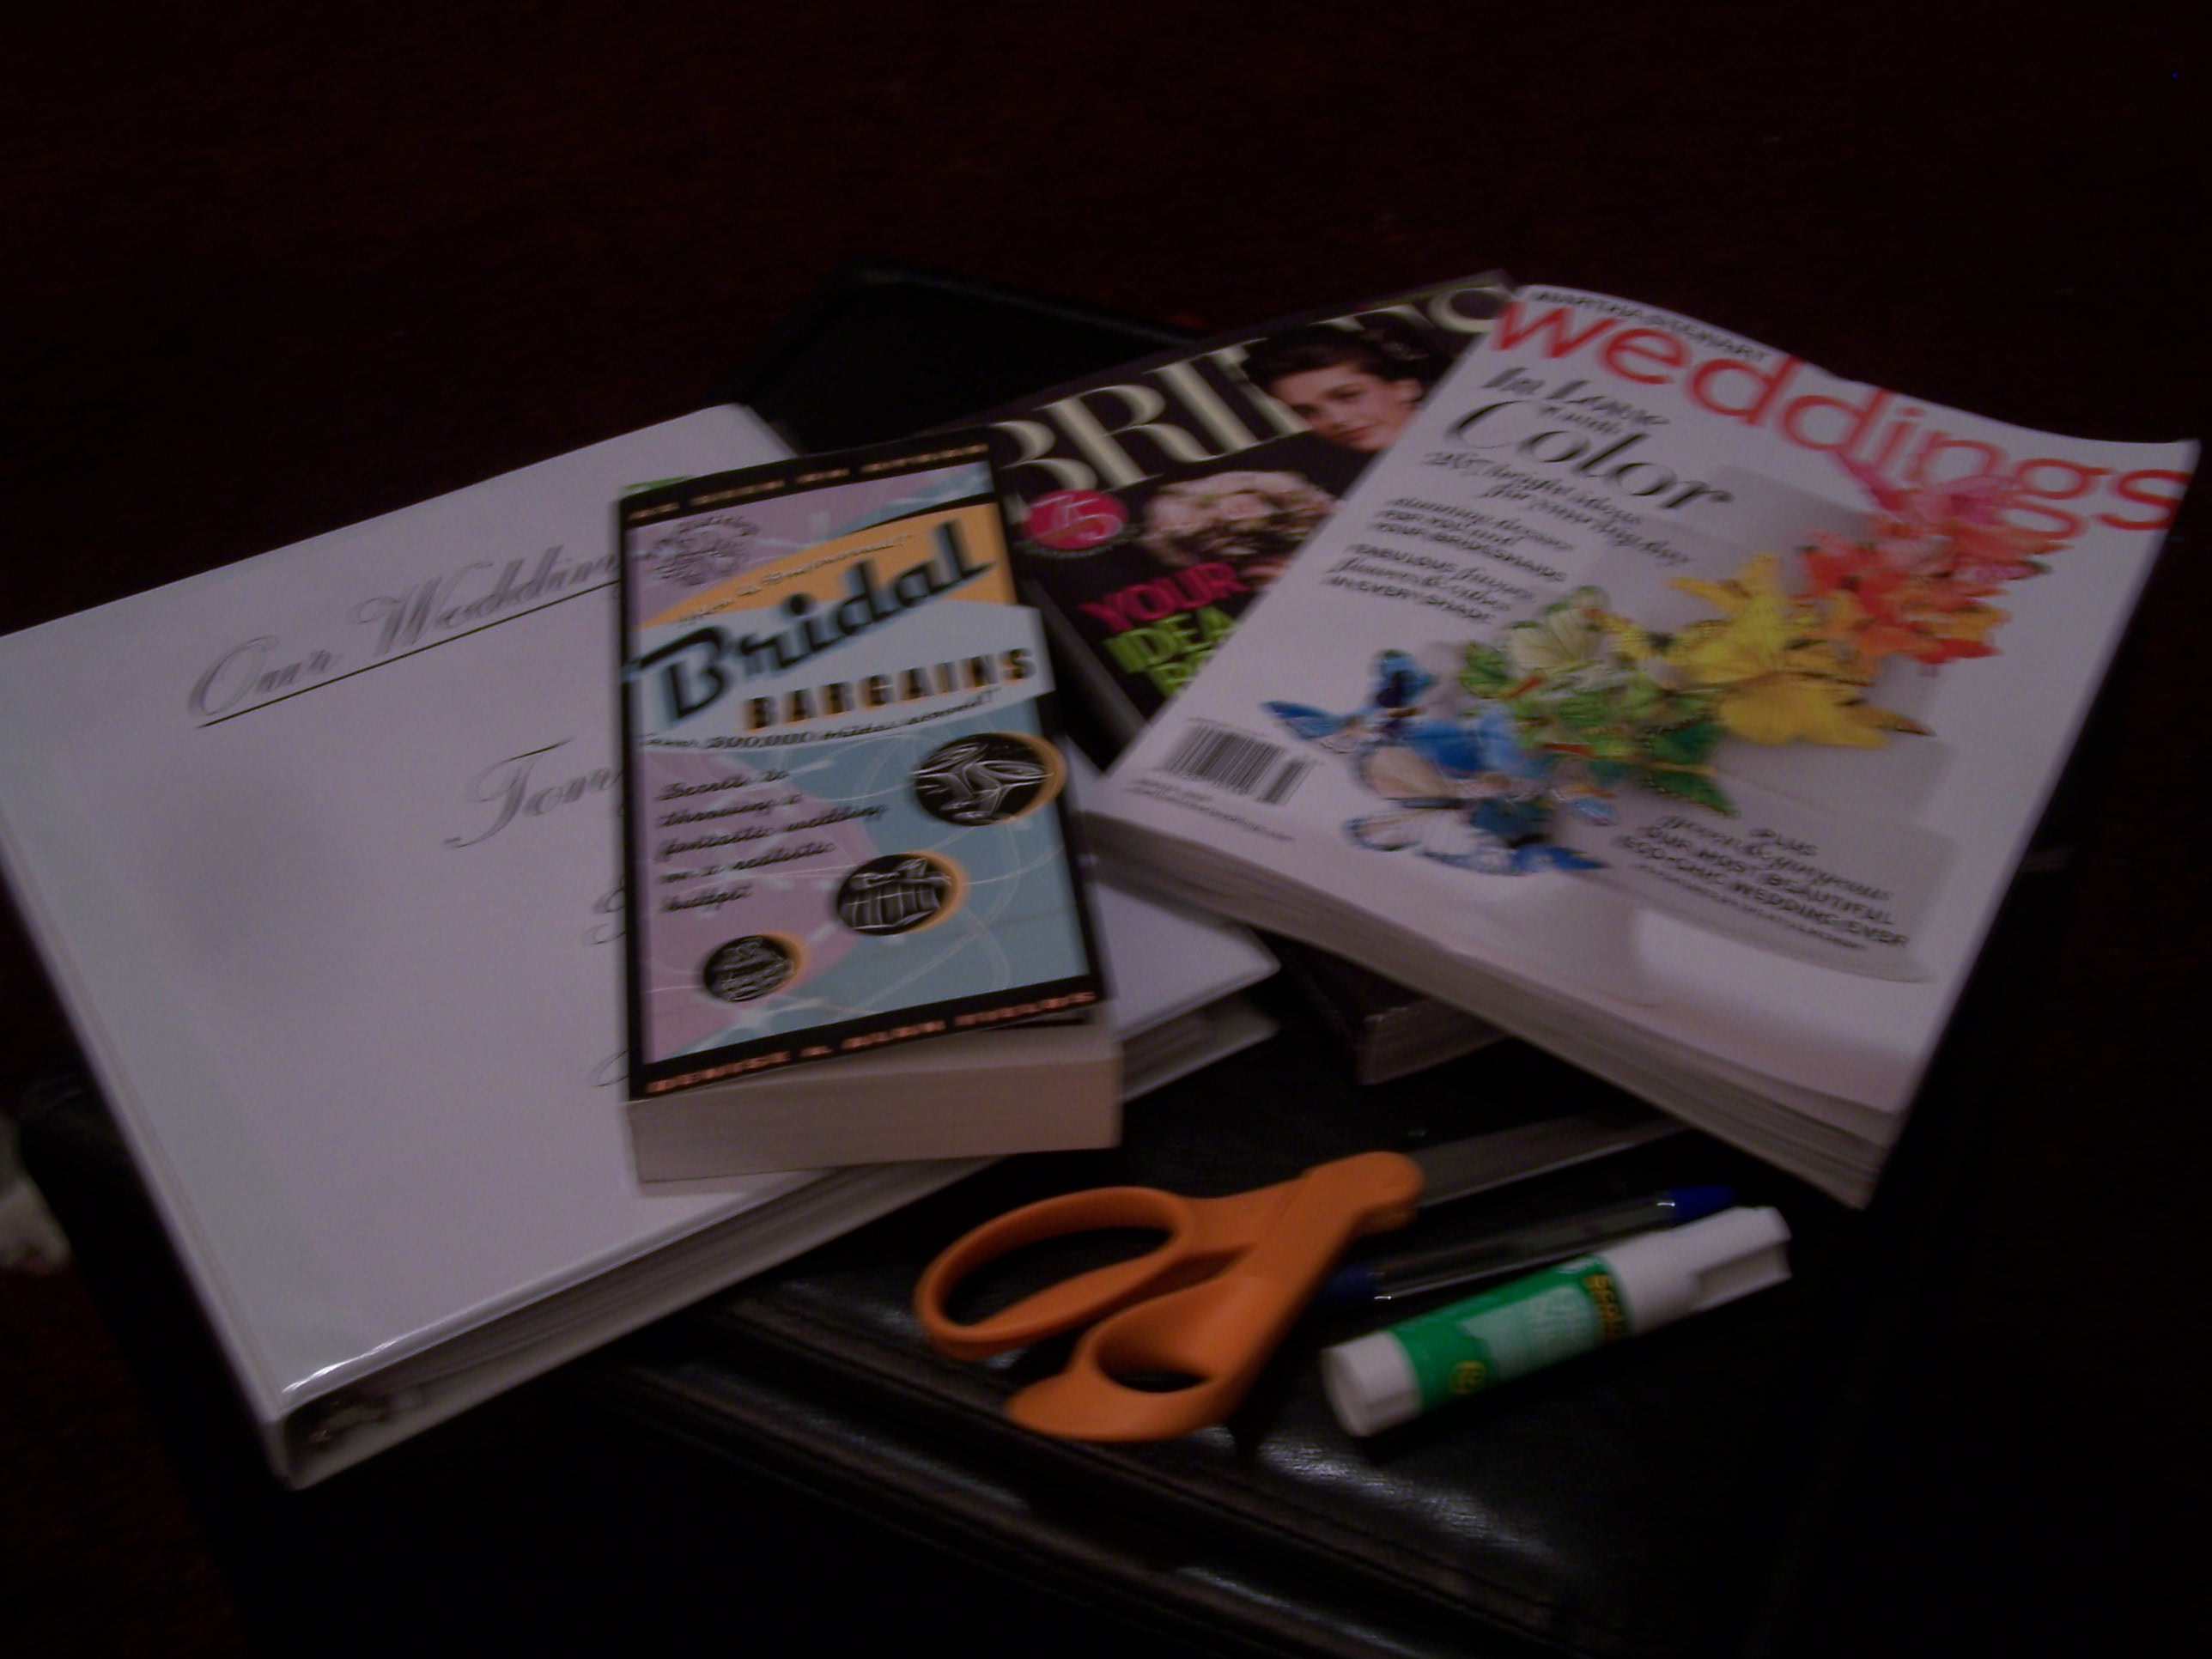 All of my materials, magazines, and books spread out on the floor to work!